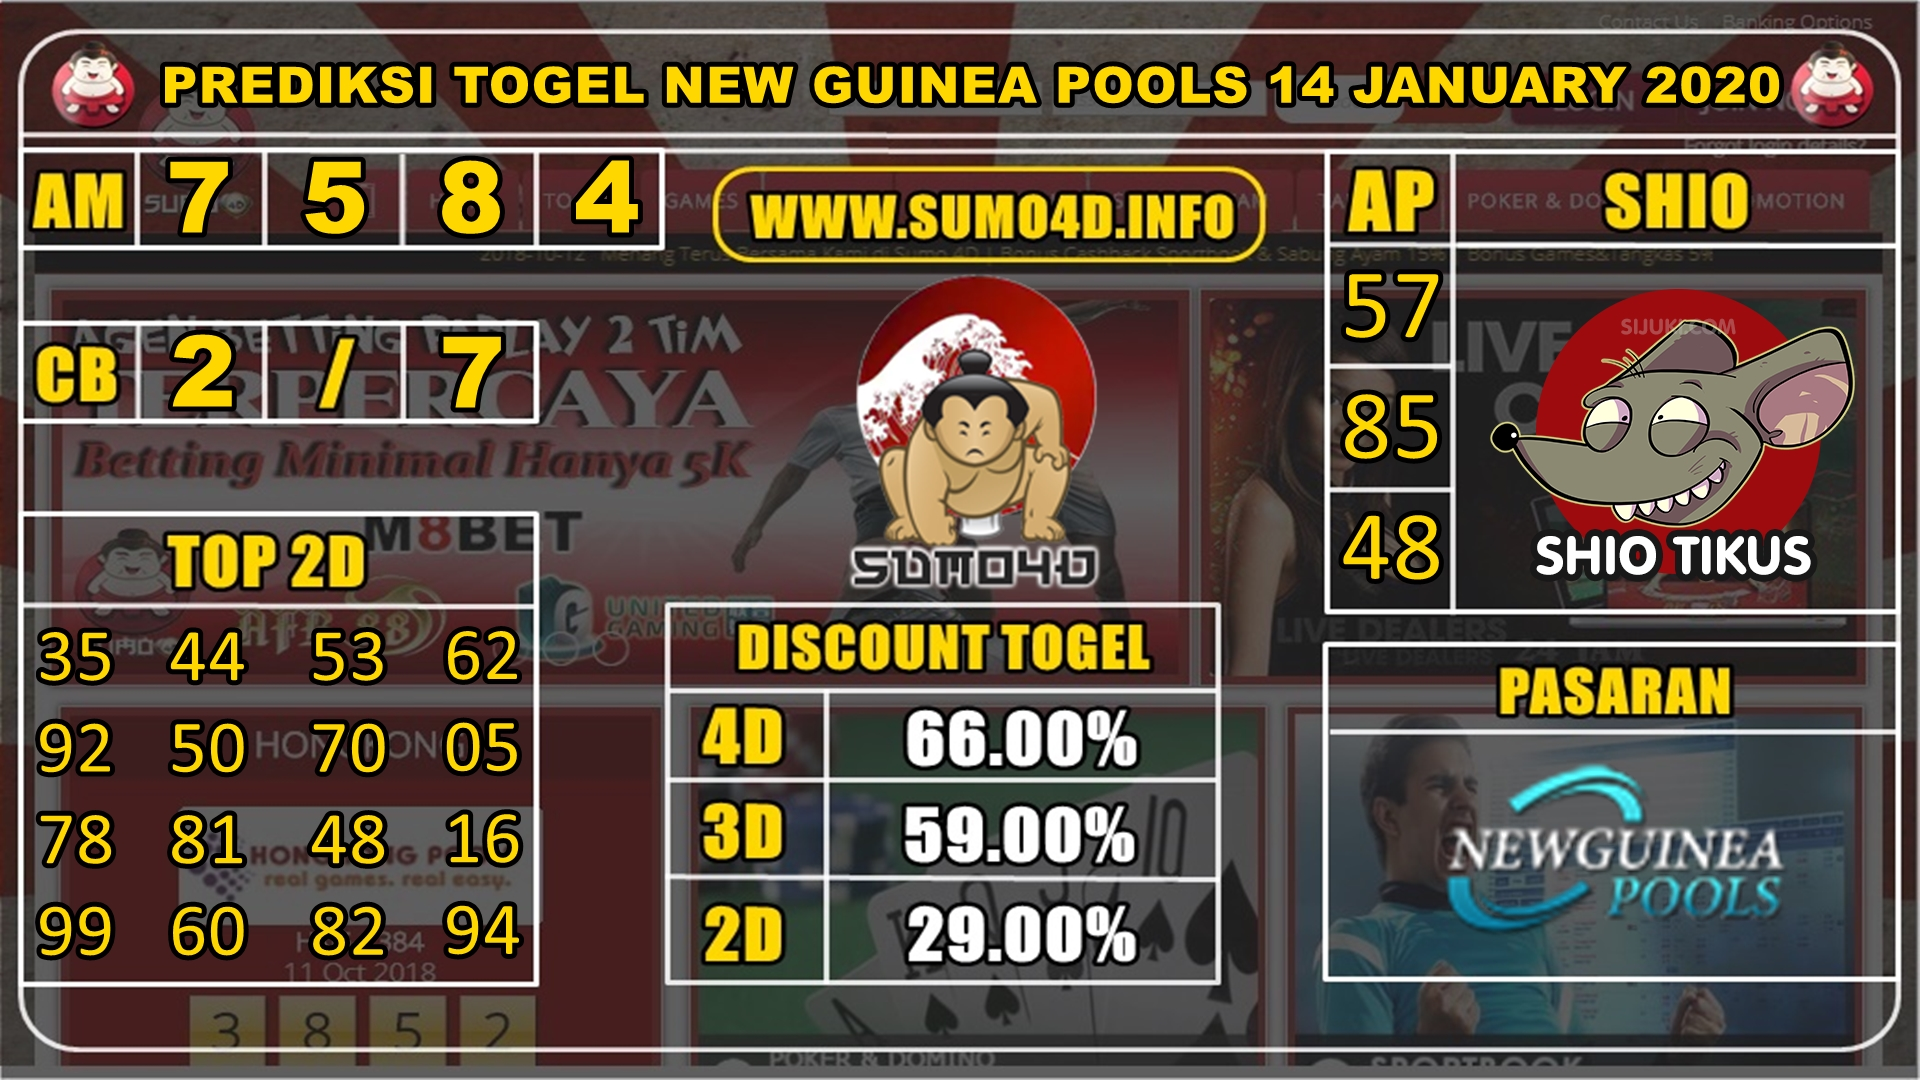 PREDIKSI TOGEL NEW GUINEA POOLS 14 JANUARY 2020